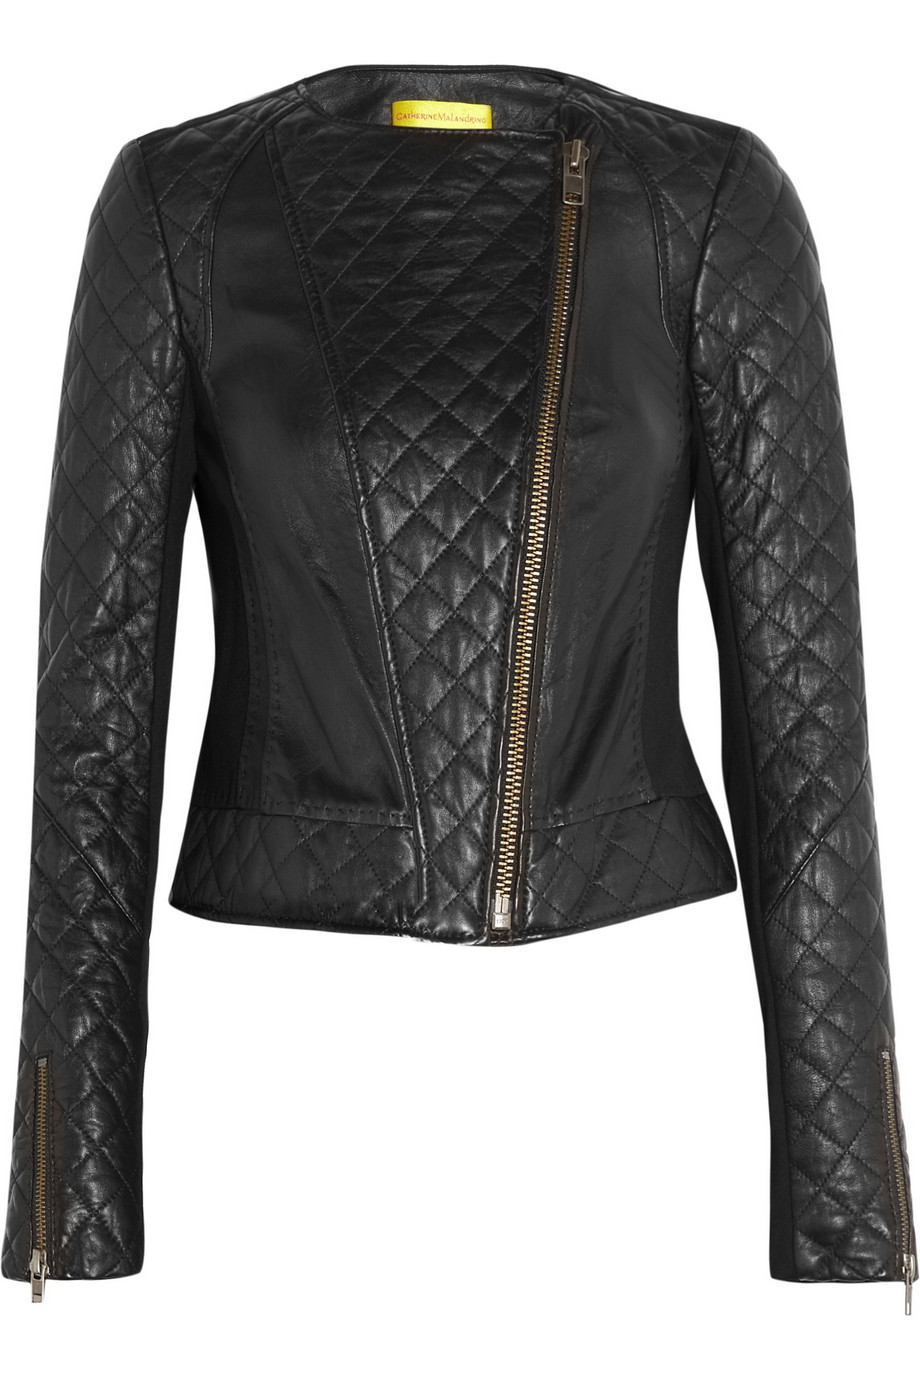 Catherine malandrino Quilted Leather and Stretchponte Jacket in ...